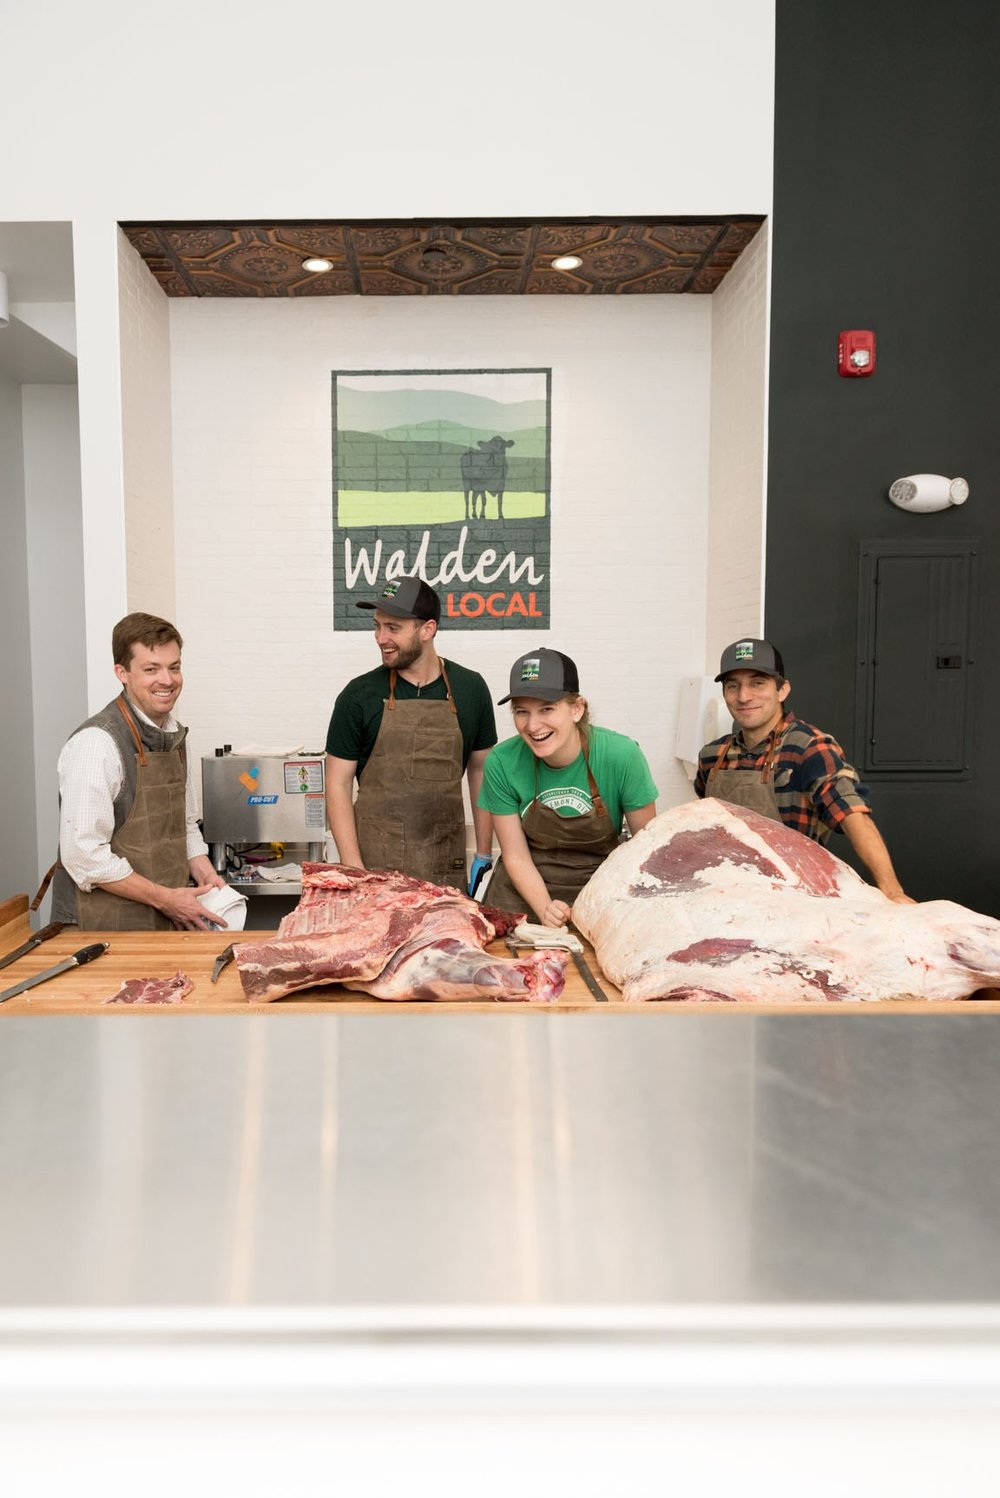 Walden Local Meats opened in late 2017 and offers a changing variety of specialty cuts, in-house sausage blends and marinated products.